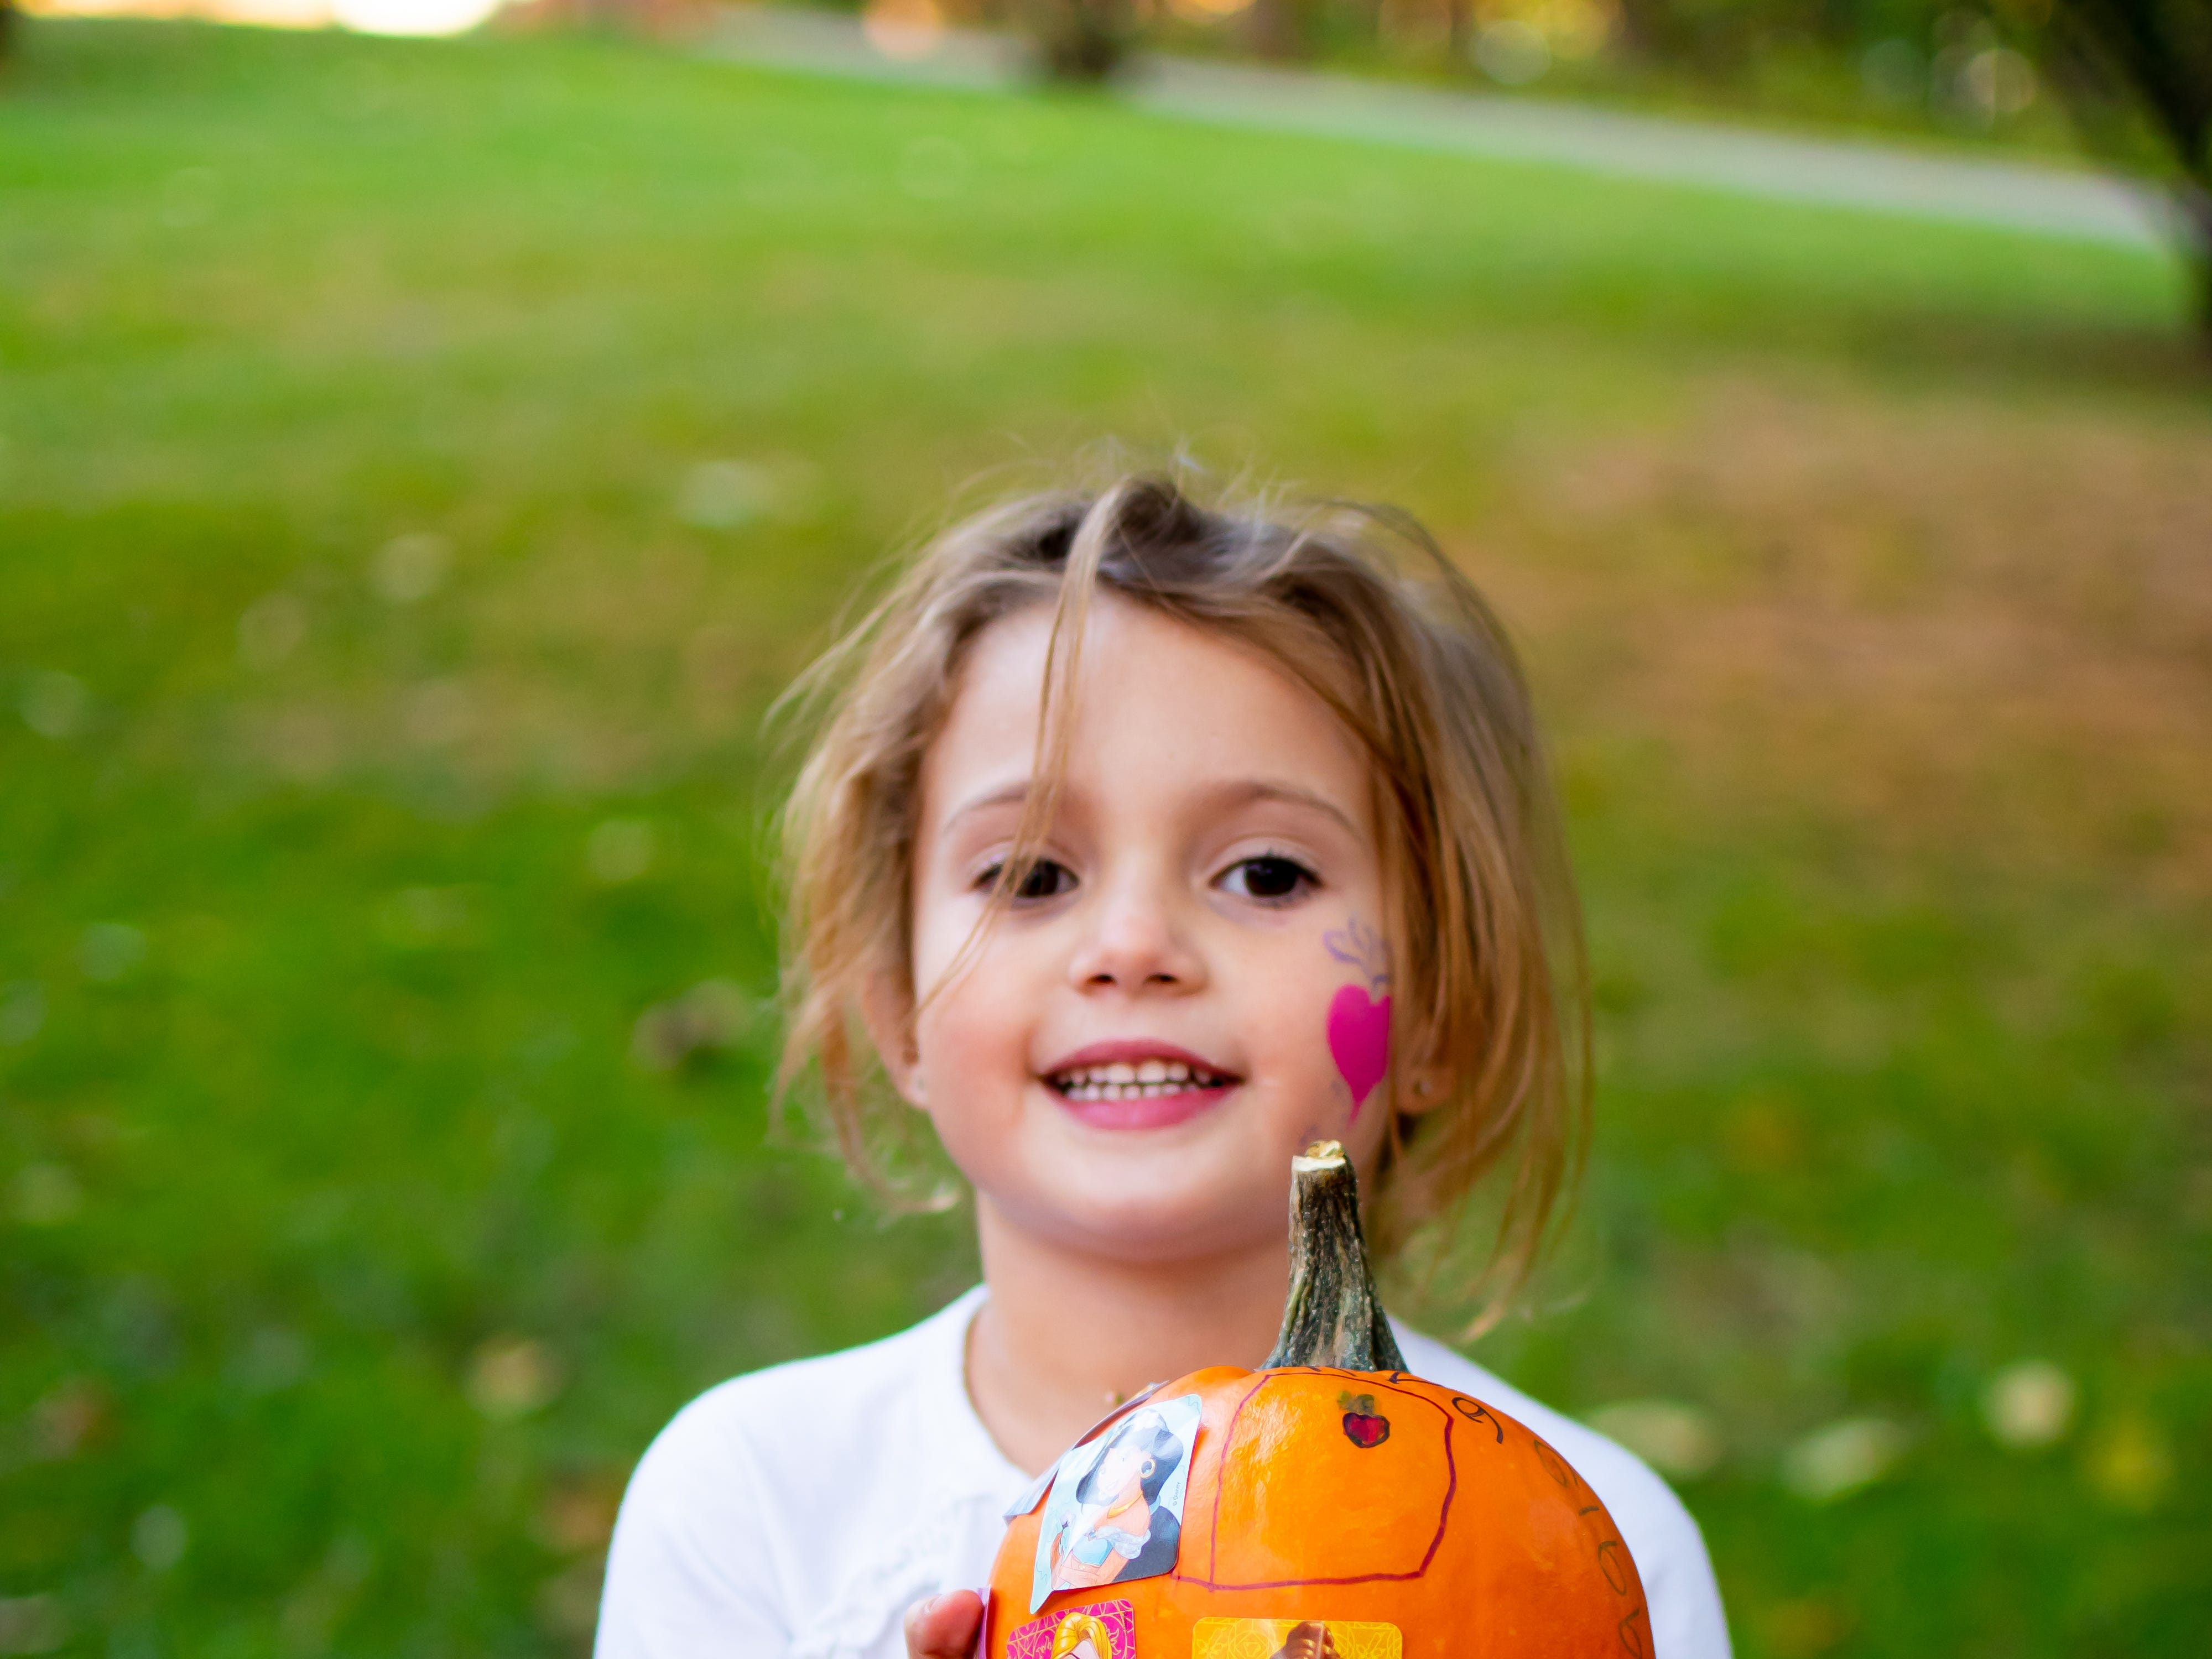 Ava Gibbons, 5, of West Des Moines decorates a pumpkin on Tuesday, Oct. 16, 2018 for the Waukee Area Chamber of Commerce fall after hours party at Timberline Campground in Waukee.